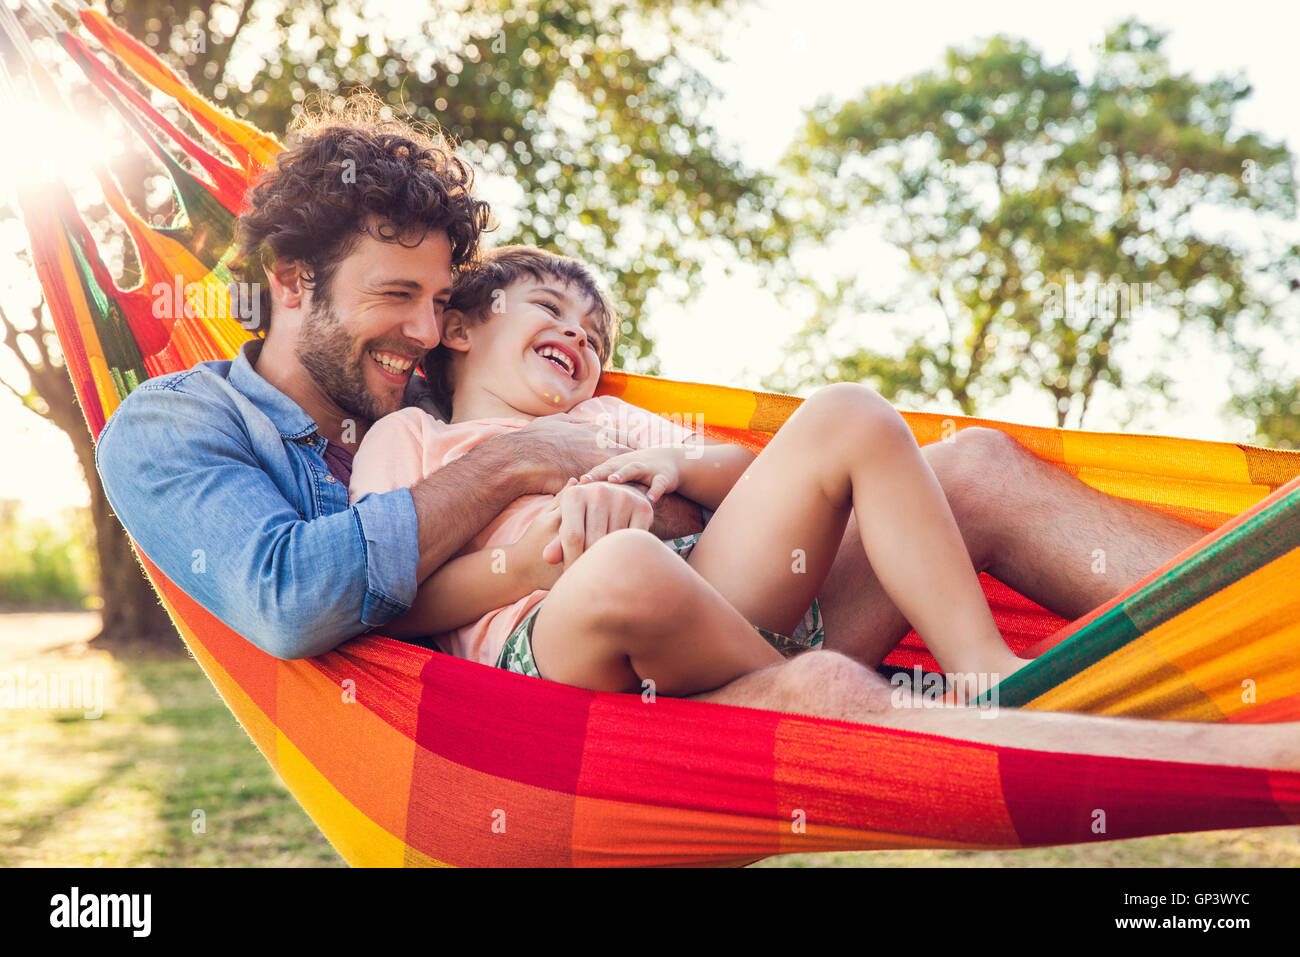 Father and son relaxing together in hammock - Stock Image